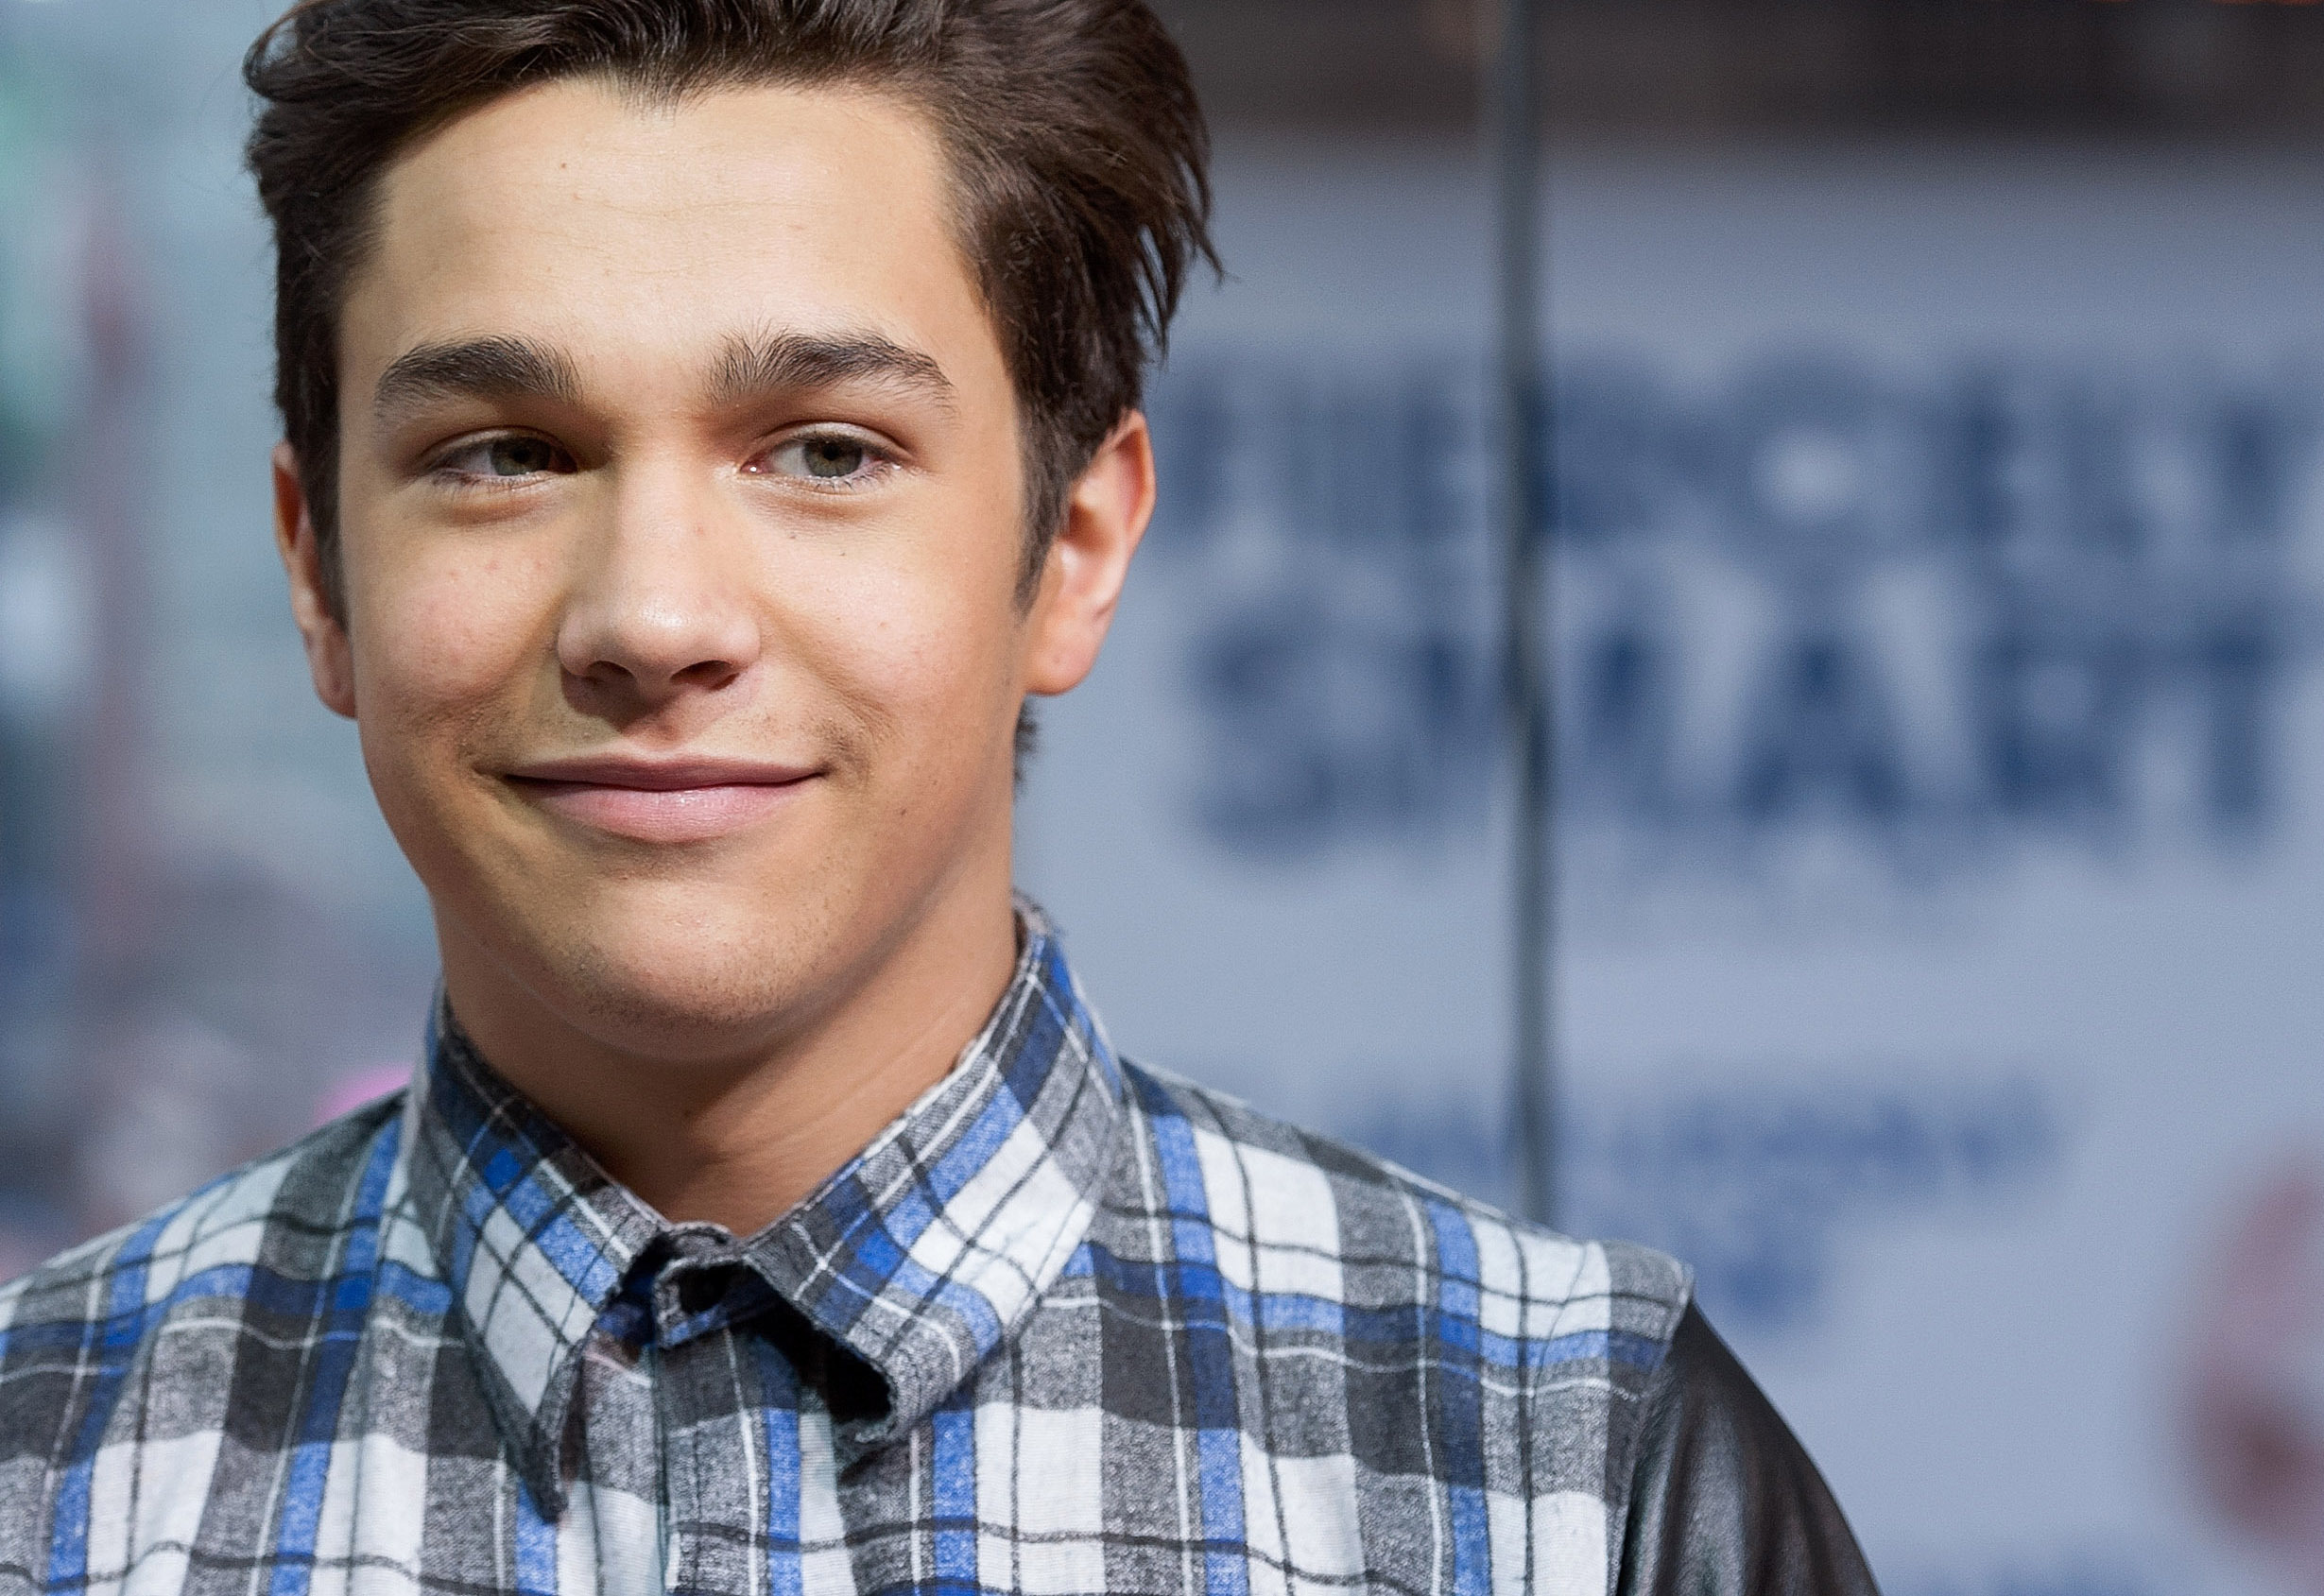 Austin Mahone Hd Wallpaper